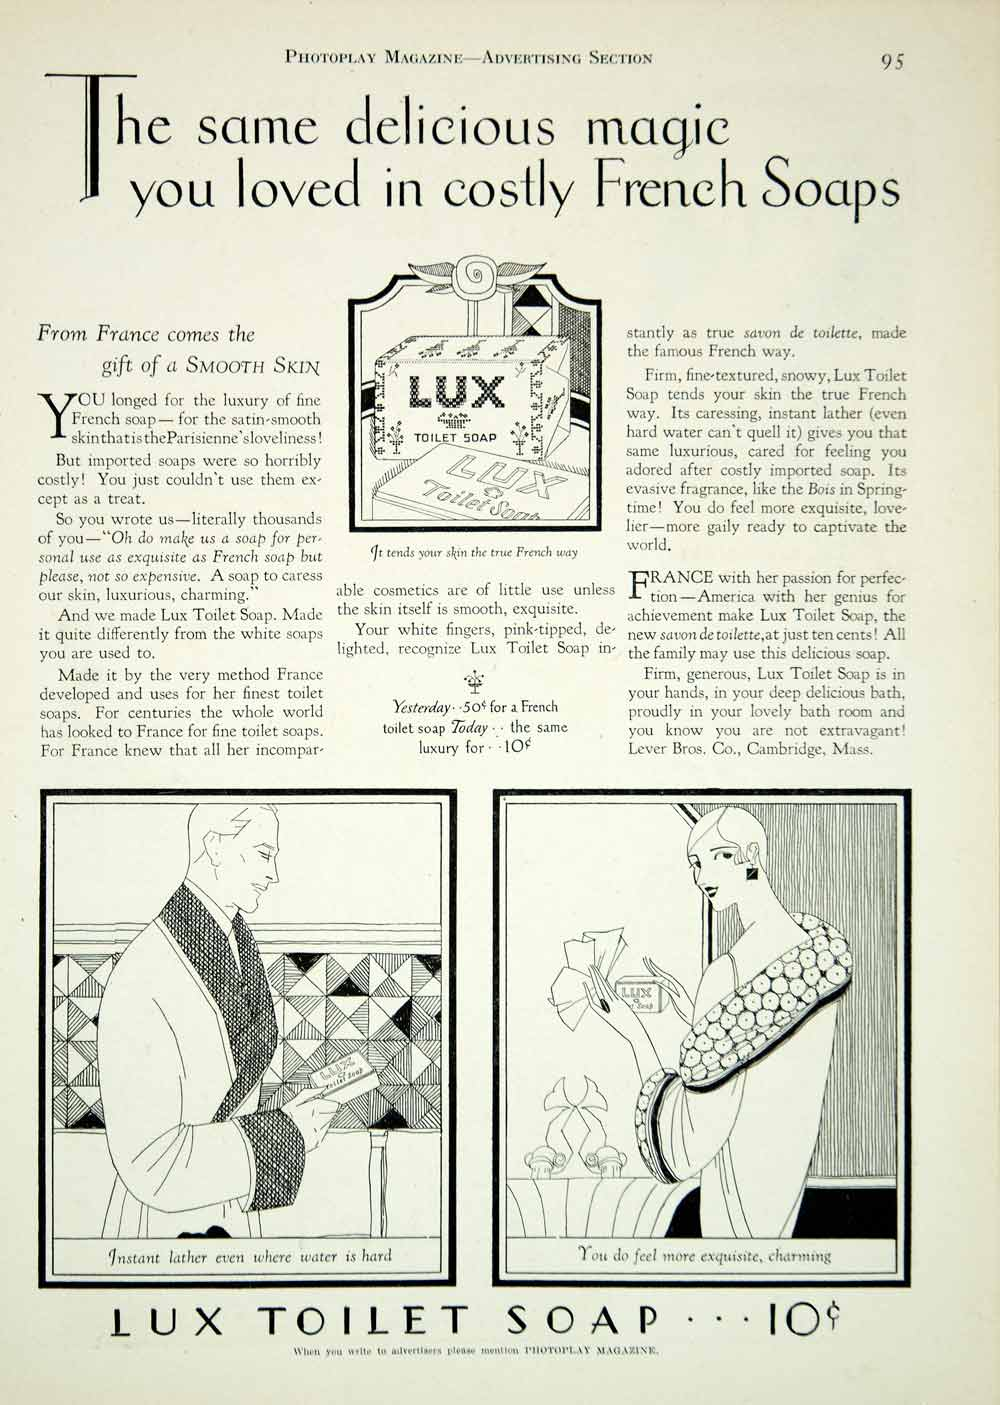 Toilette Deco Original 1927 Ad Vintage Lux Toilet Soap Art Deco French Face Skin Care Complexion Ypp3